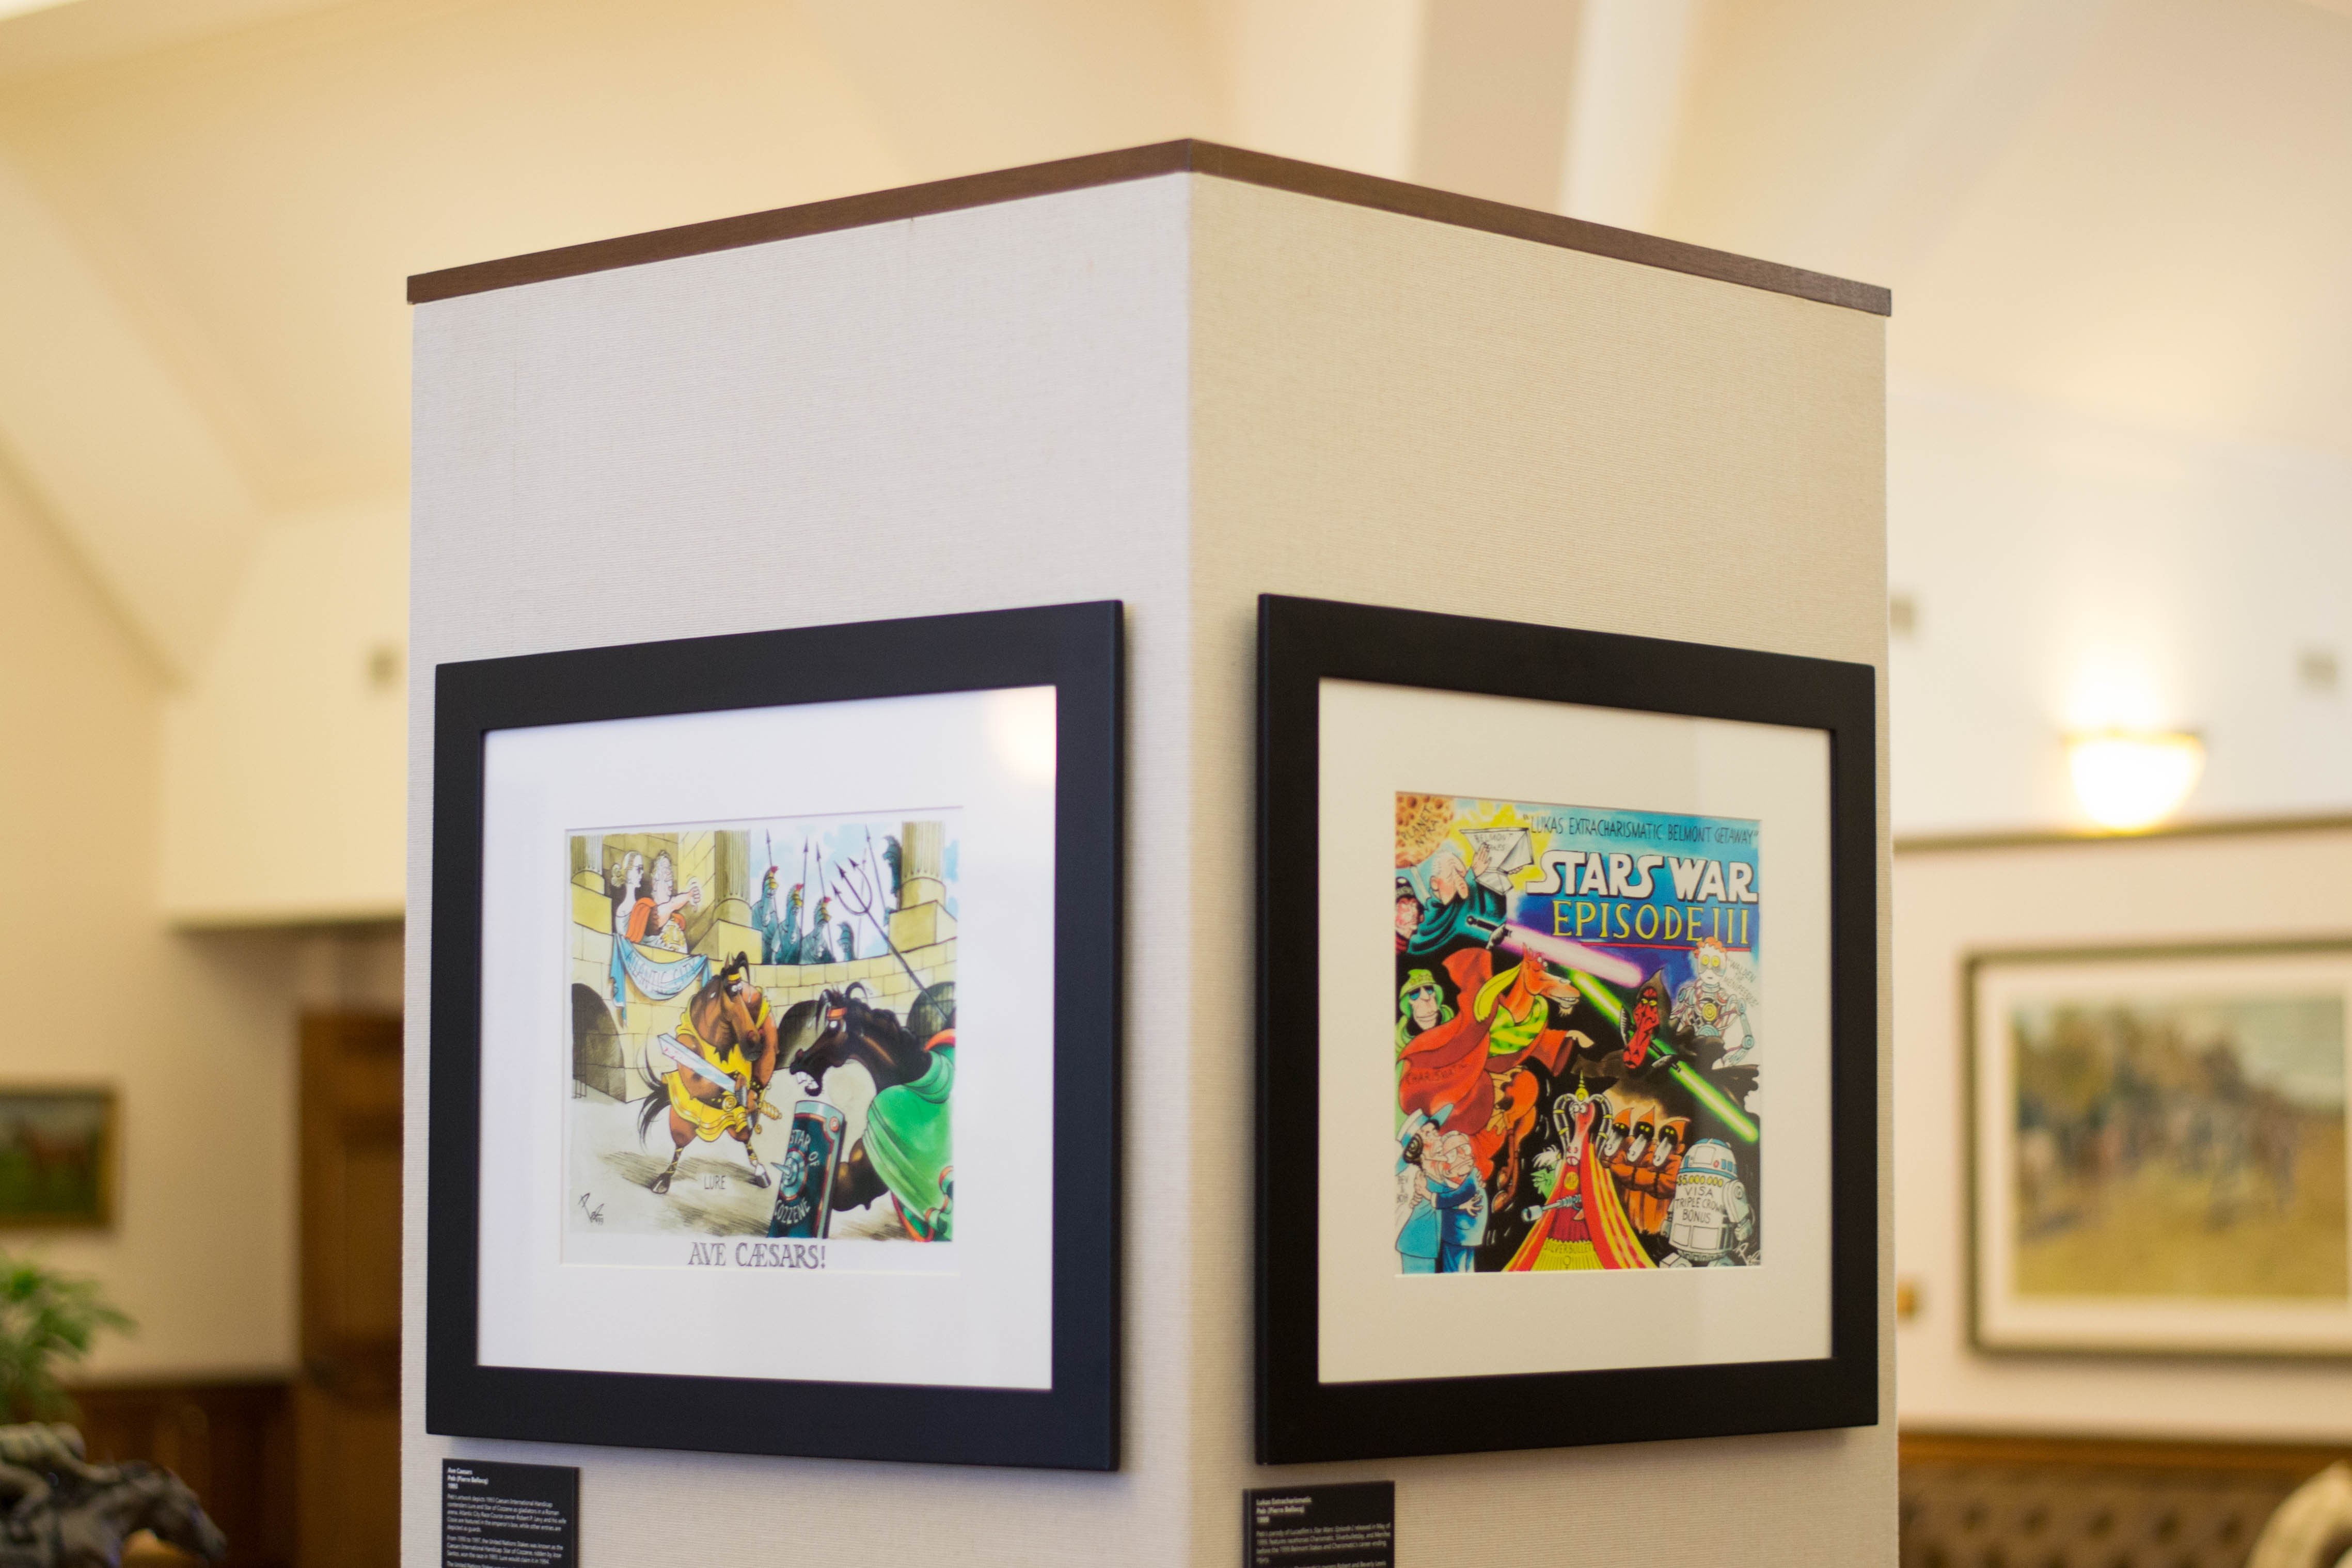 Peb collection at the Keeneland Library